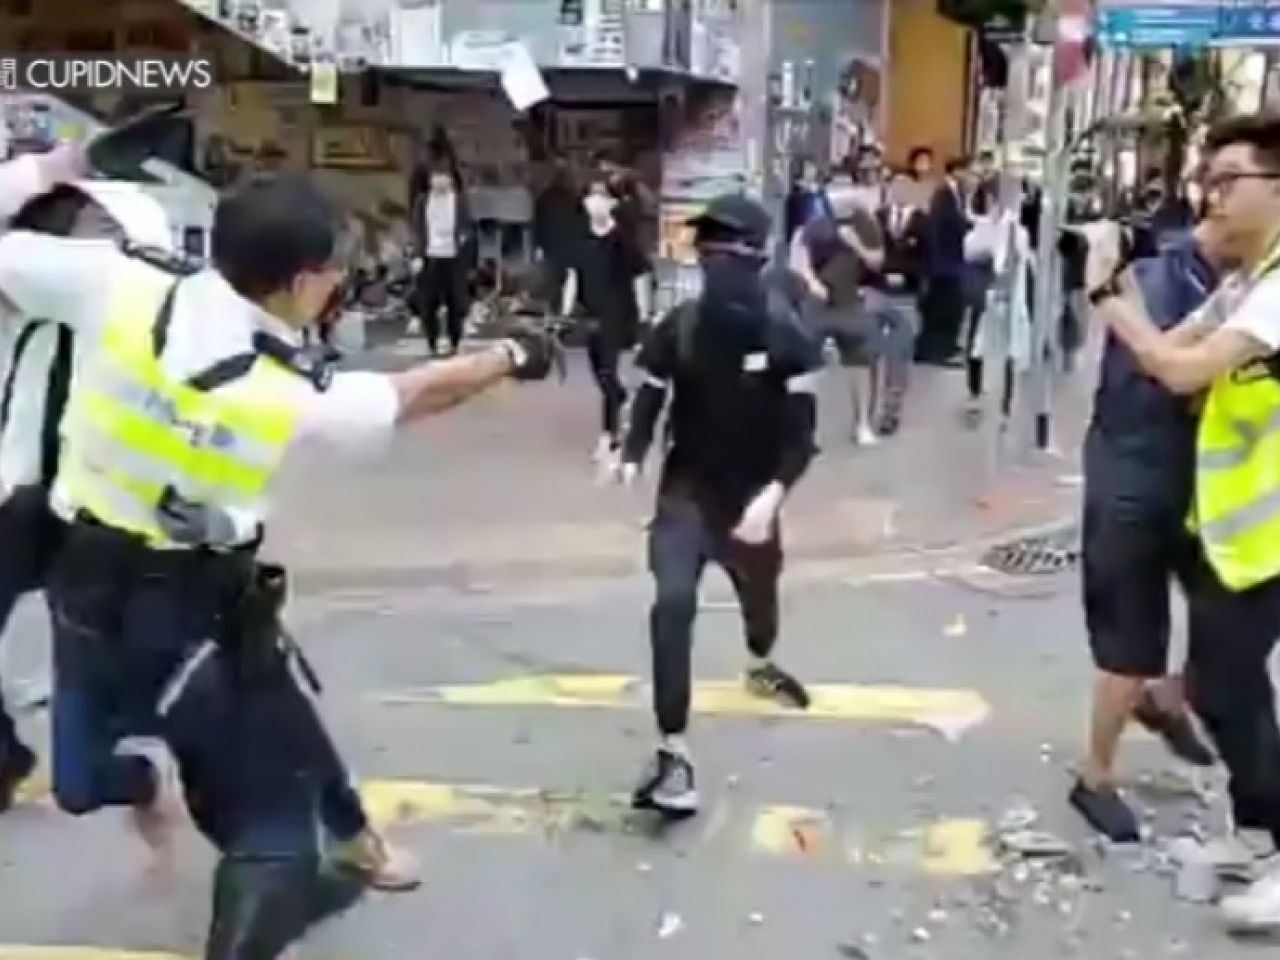 The ex-lawmaker wanted the policeman who shot and seriously wounded a protester in Sai Wan Ho to face prosecution. File image courtesy of Cupid News